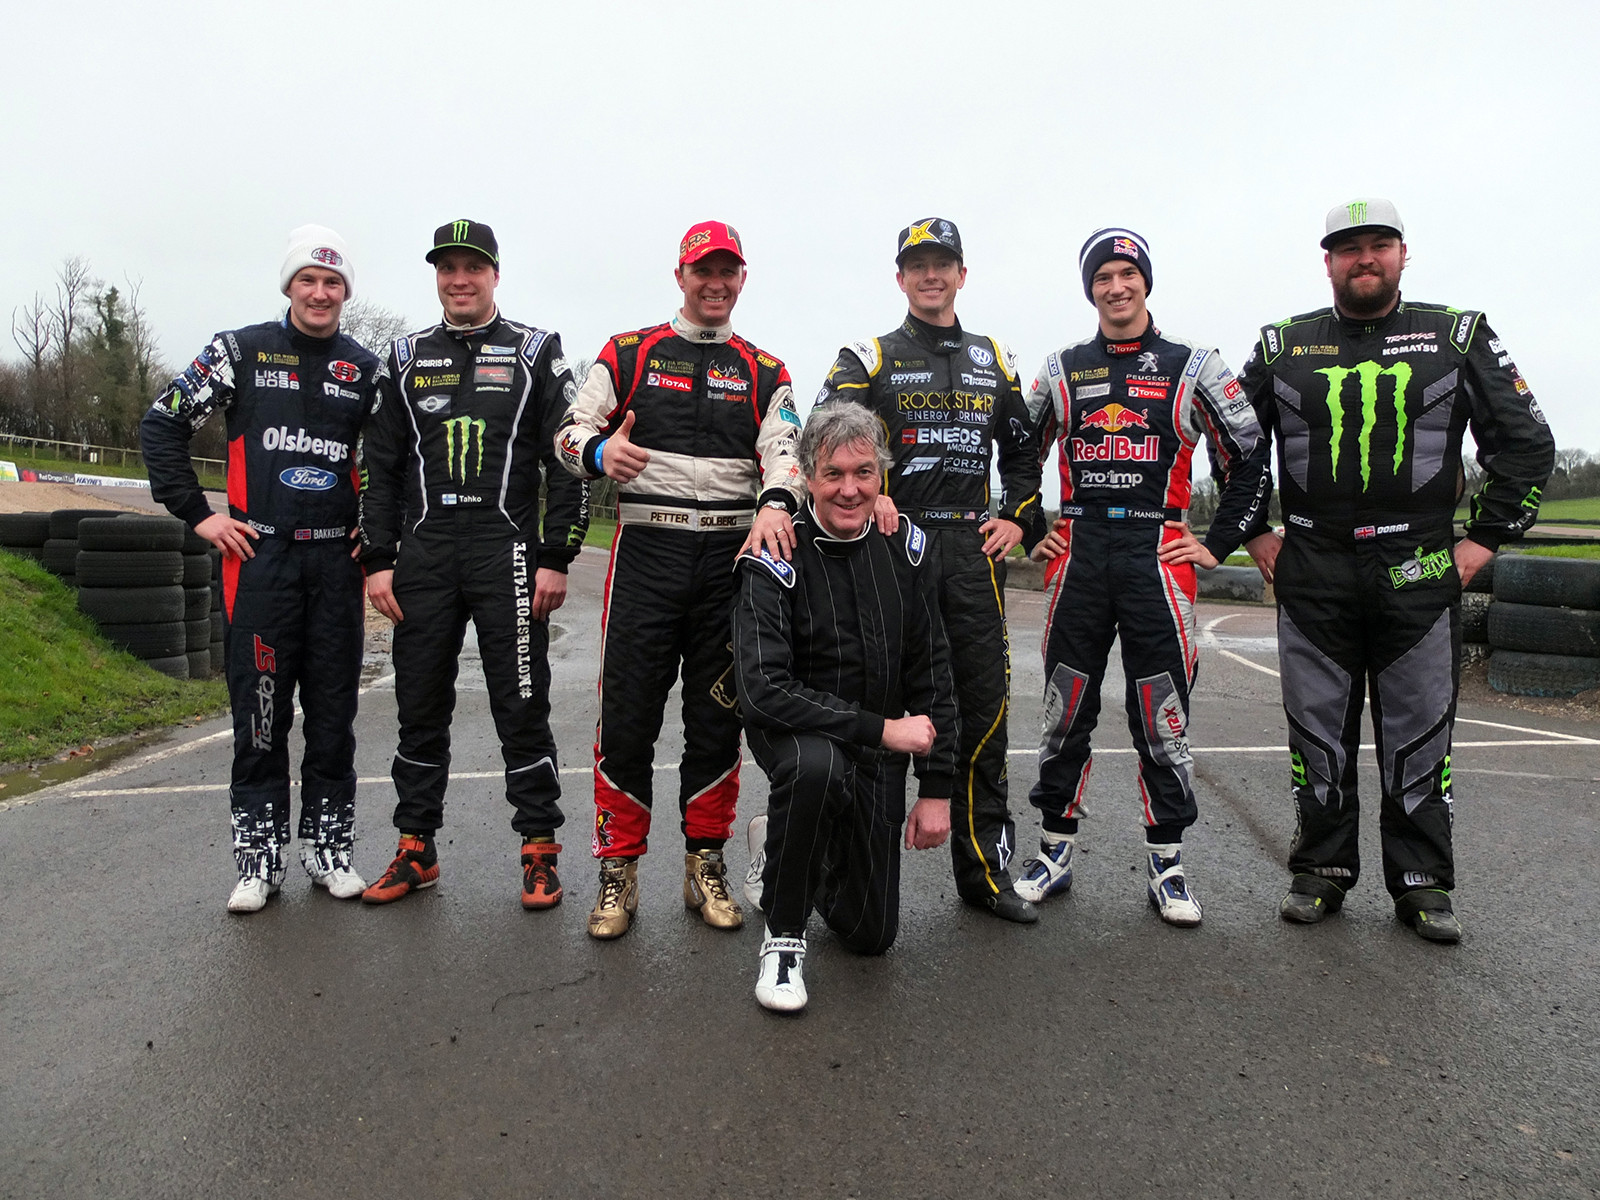 James_May at Lydden Hil with World Rallycross drivers